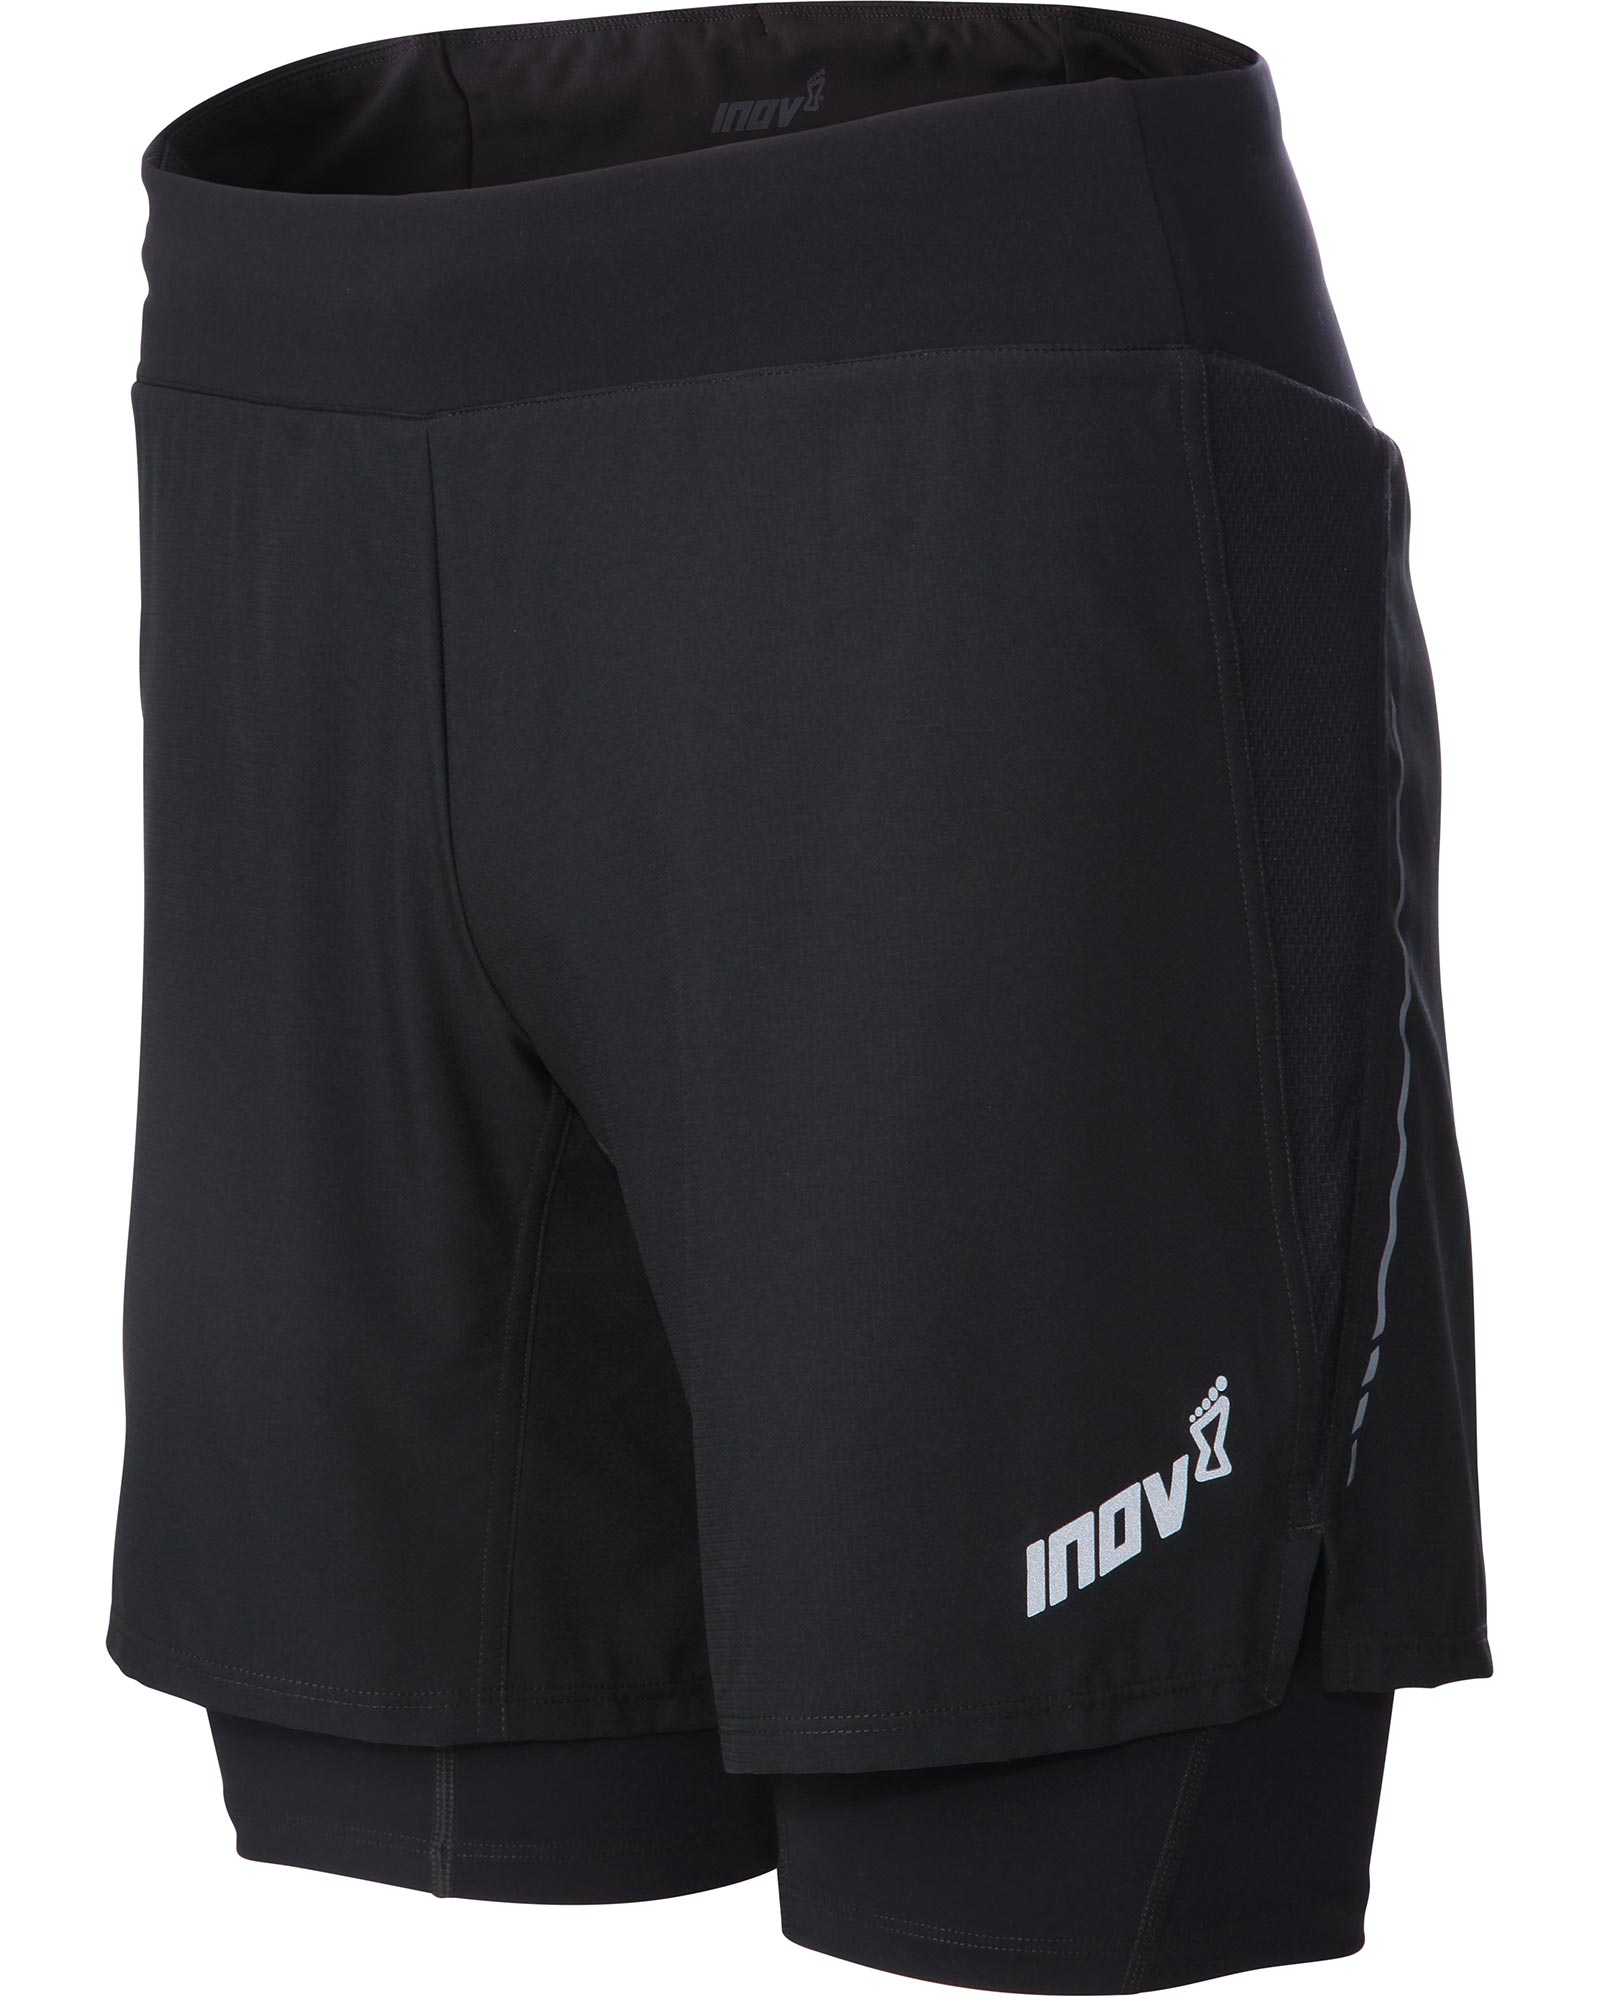 Product image of Inov-8 Men's Race elite 7 Twin Shorts